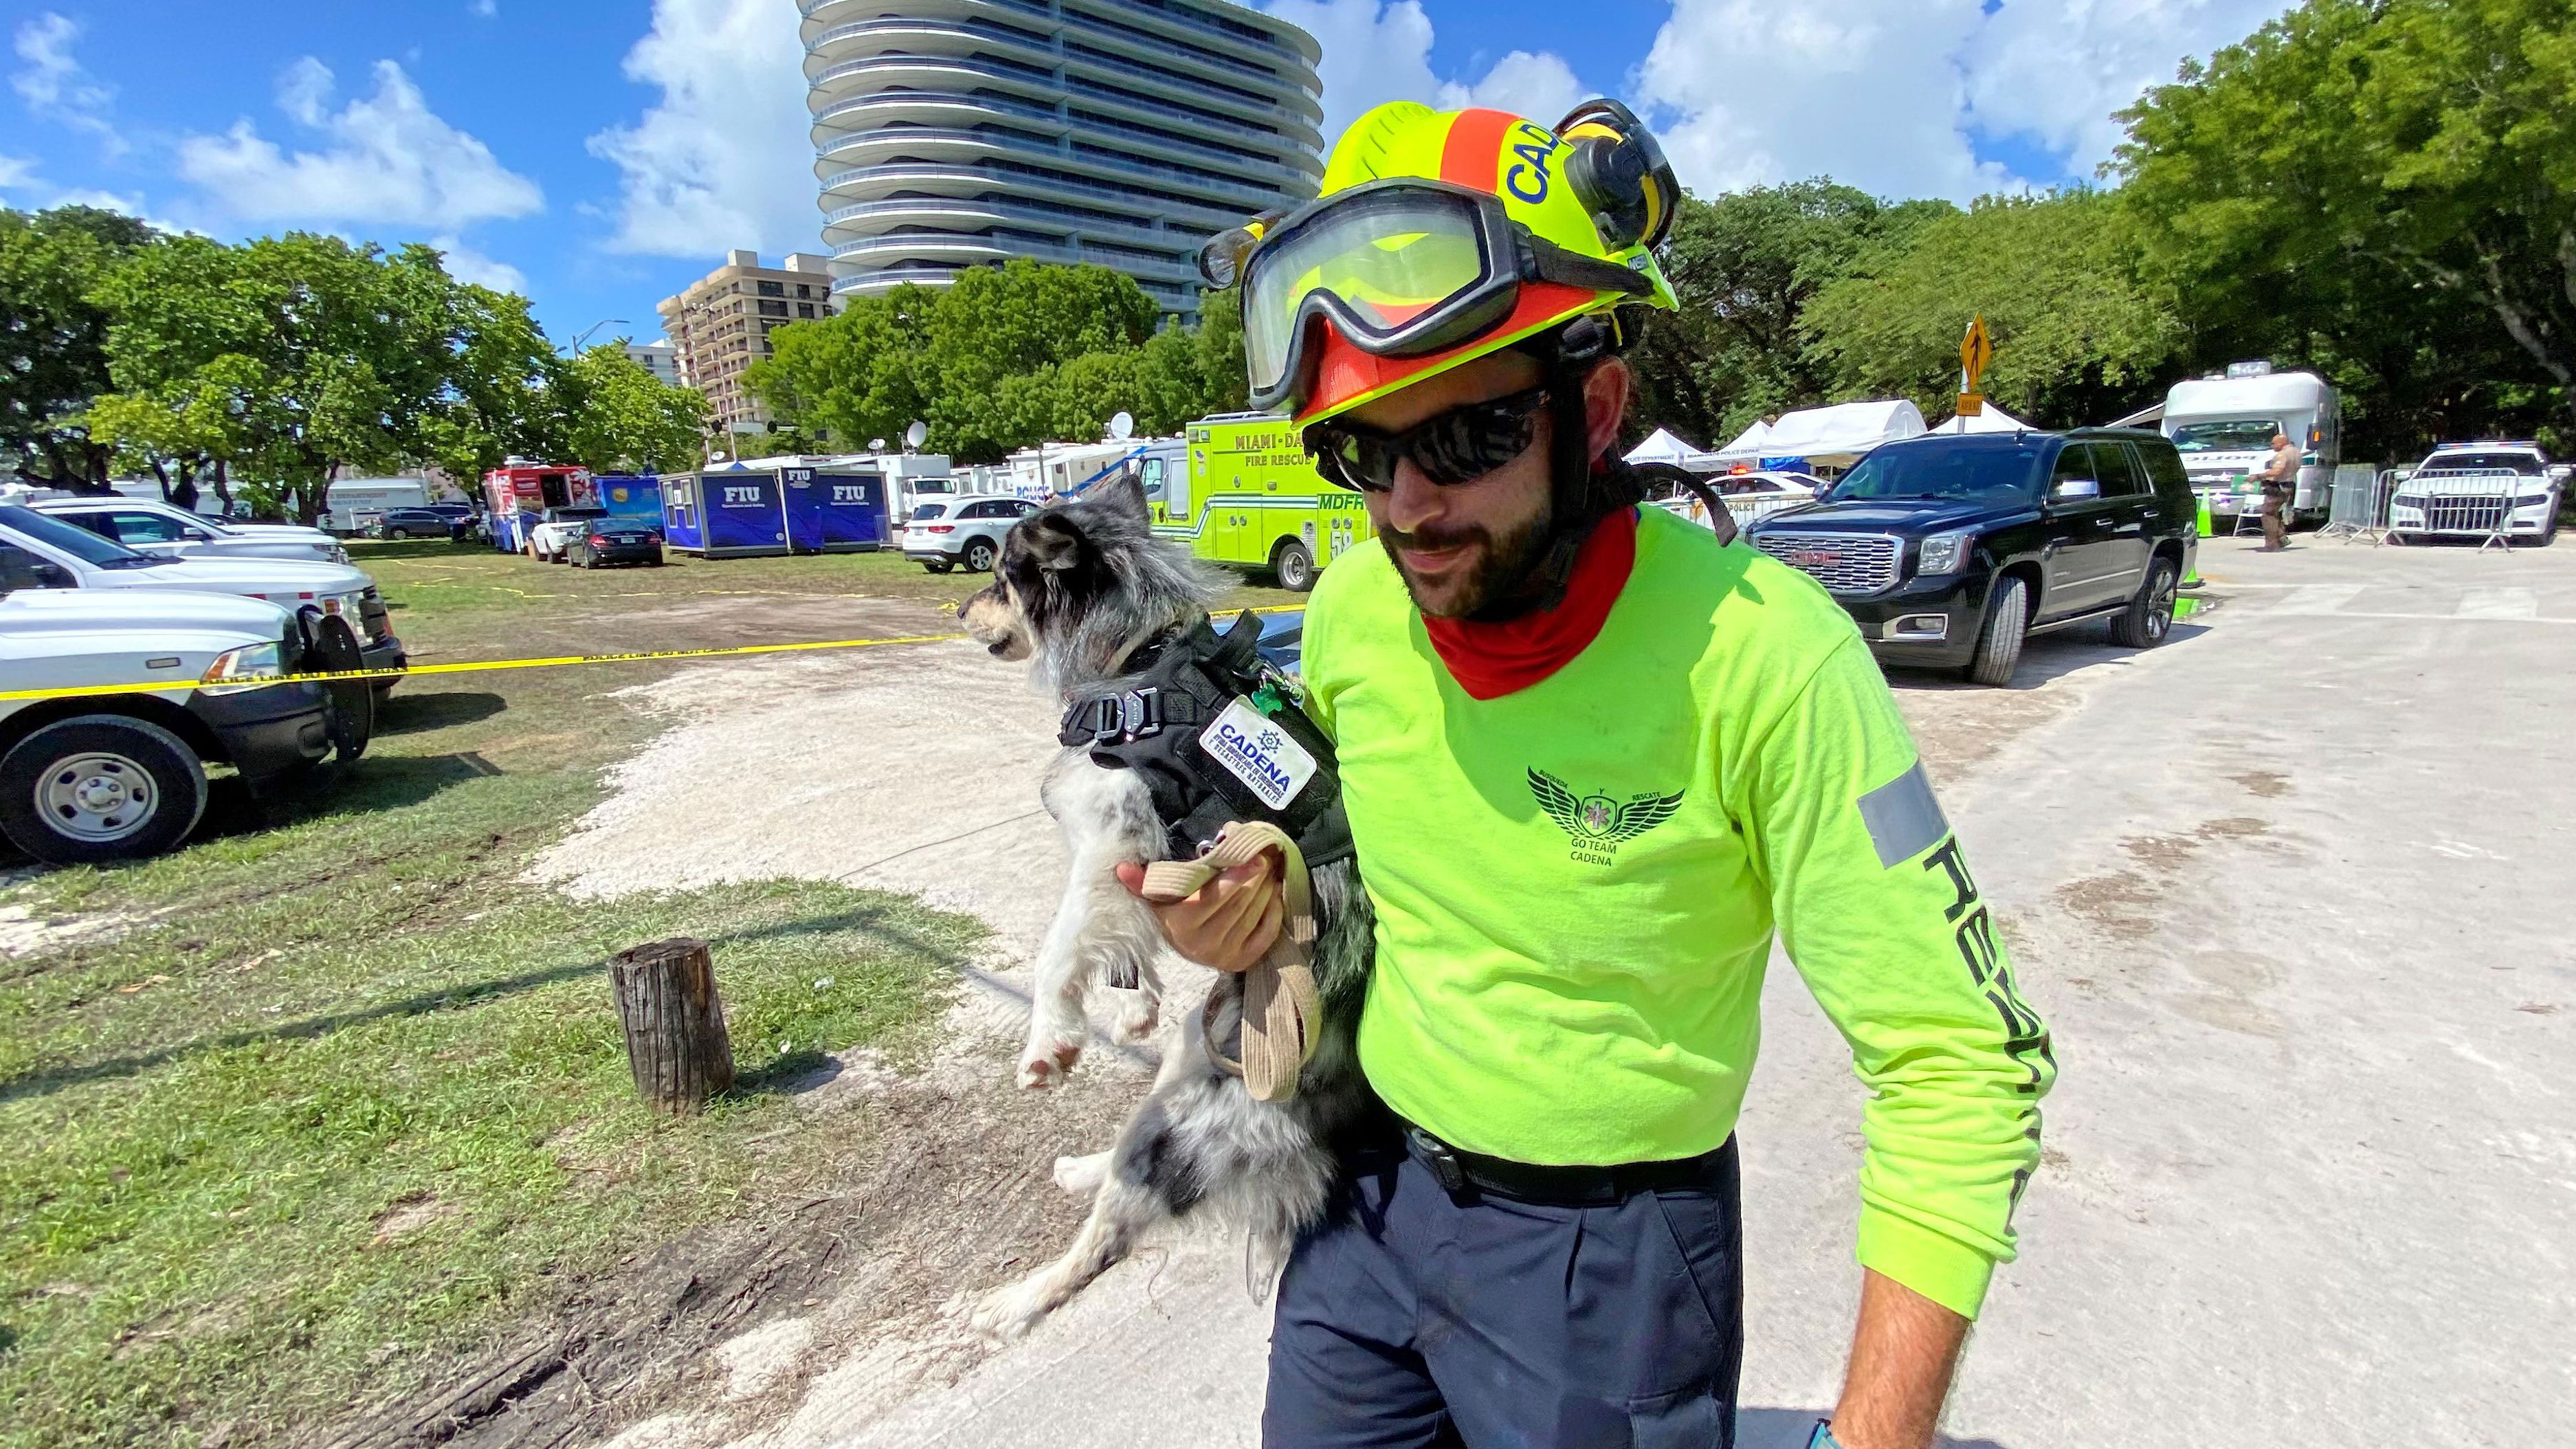 A search dog named Oreo, a 2-year-old female pomsky, owned by volunteer Moises Soffer, from Mexico is seen outside on Sunday, June 27, in Surfside, Florida.